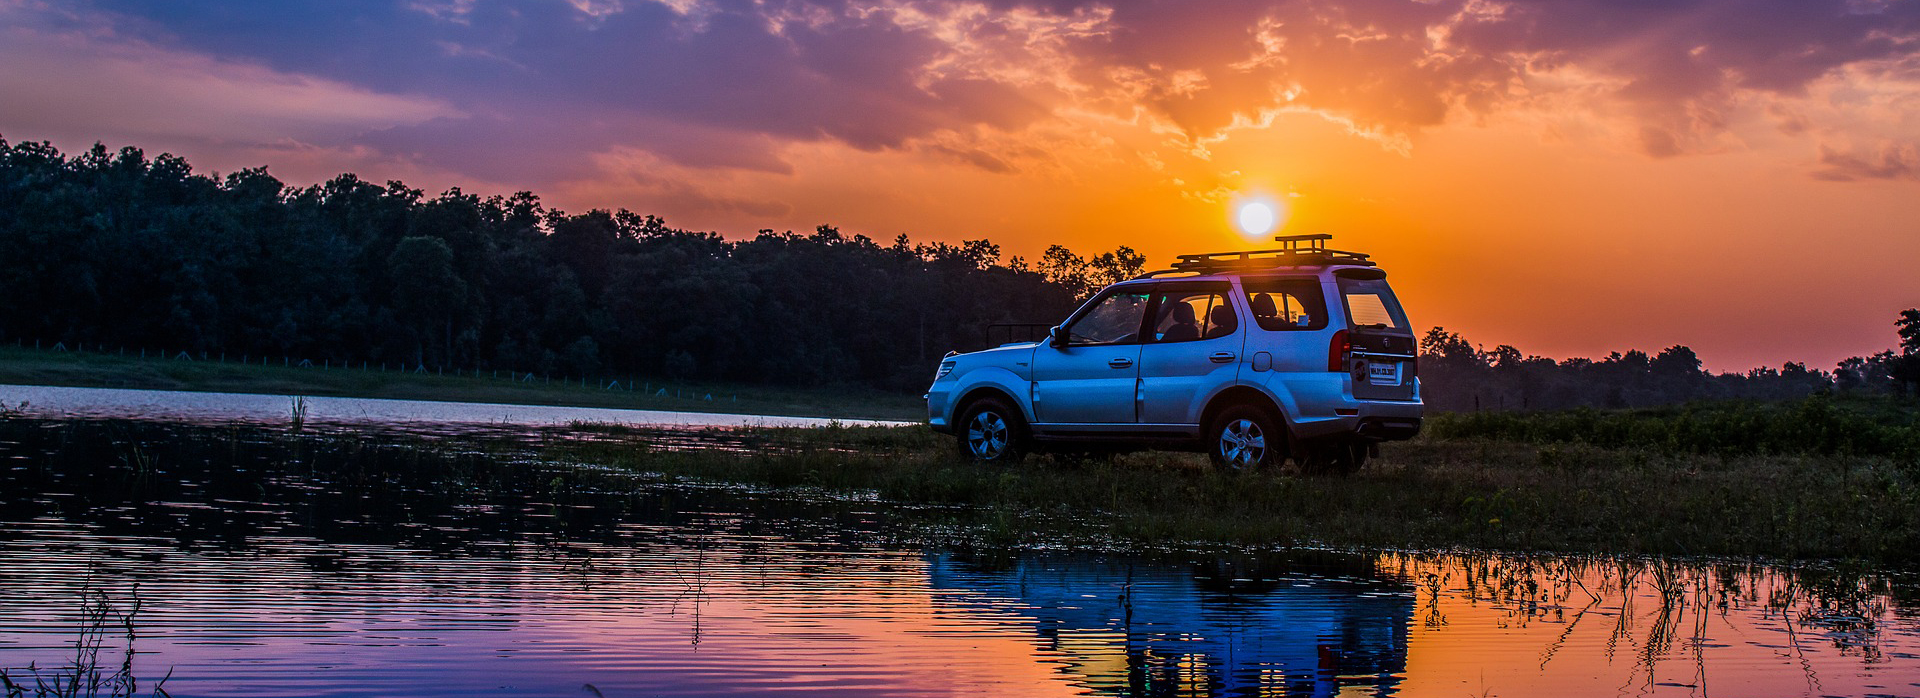 Awesome Sunset in Cape Coral Florida   Breast Cancer Car Donations